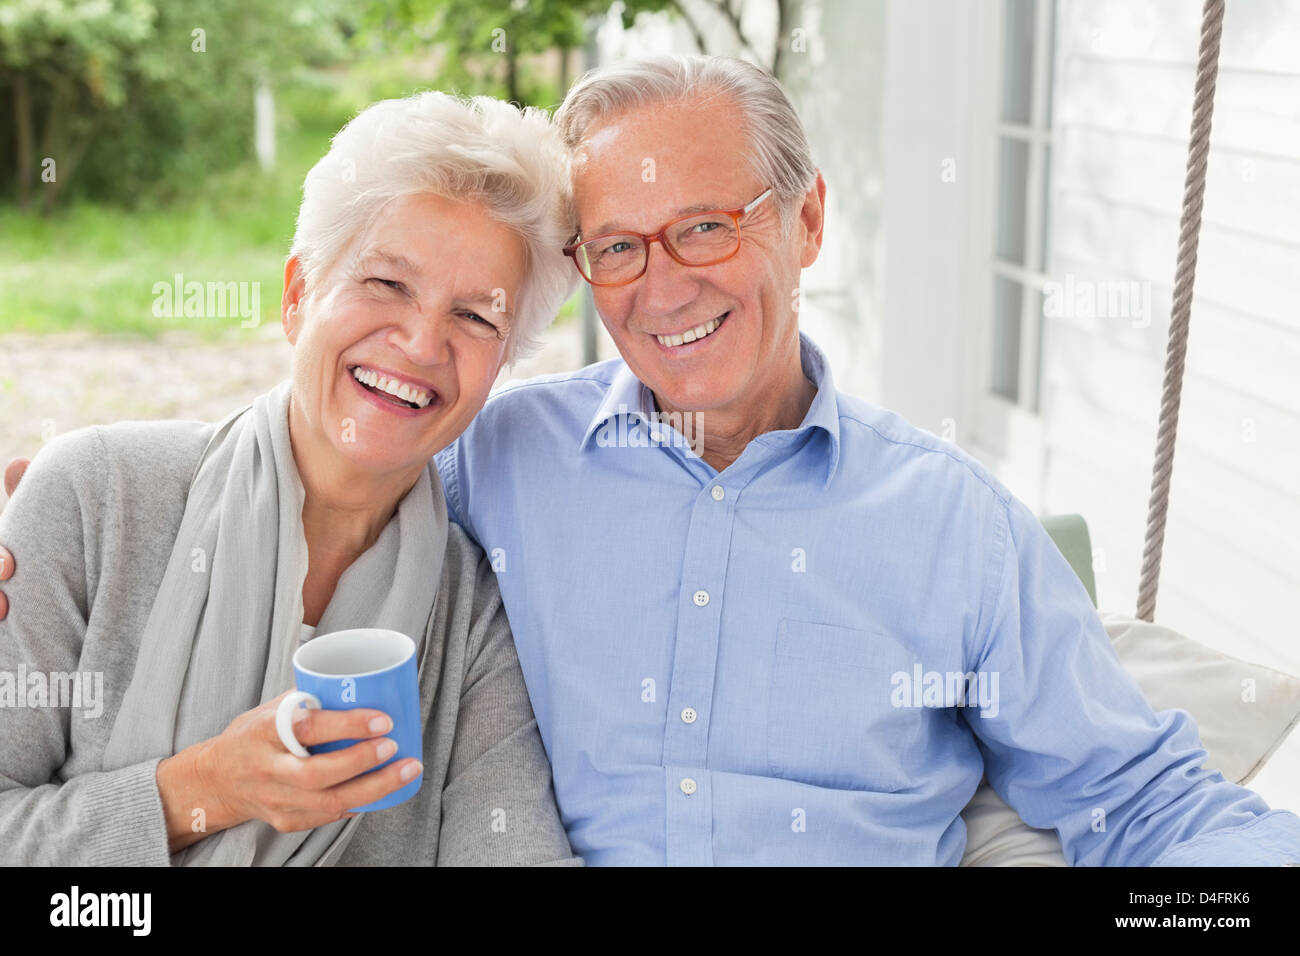 Smiling couple sitting on porch swing - Stock Image